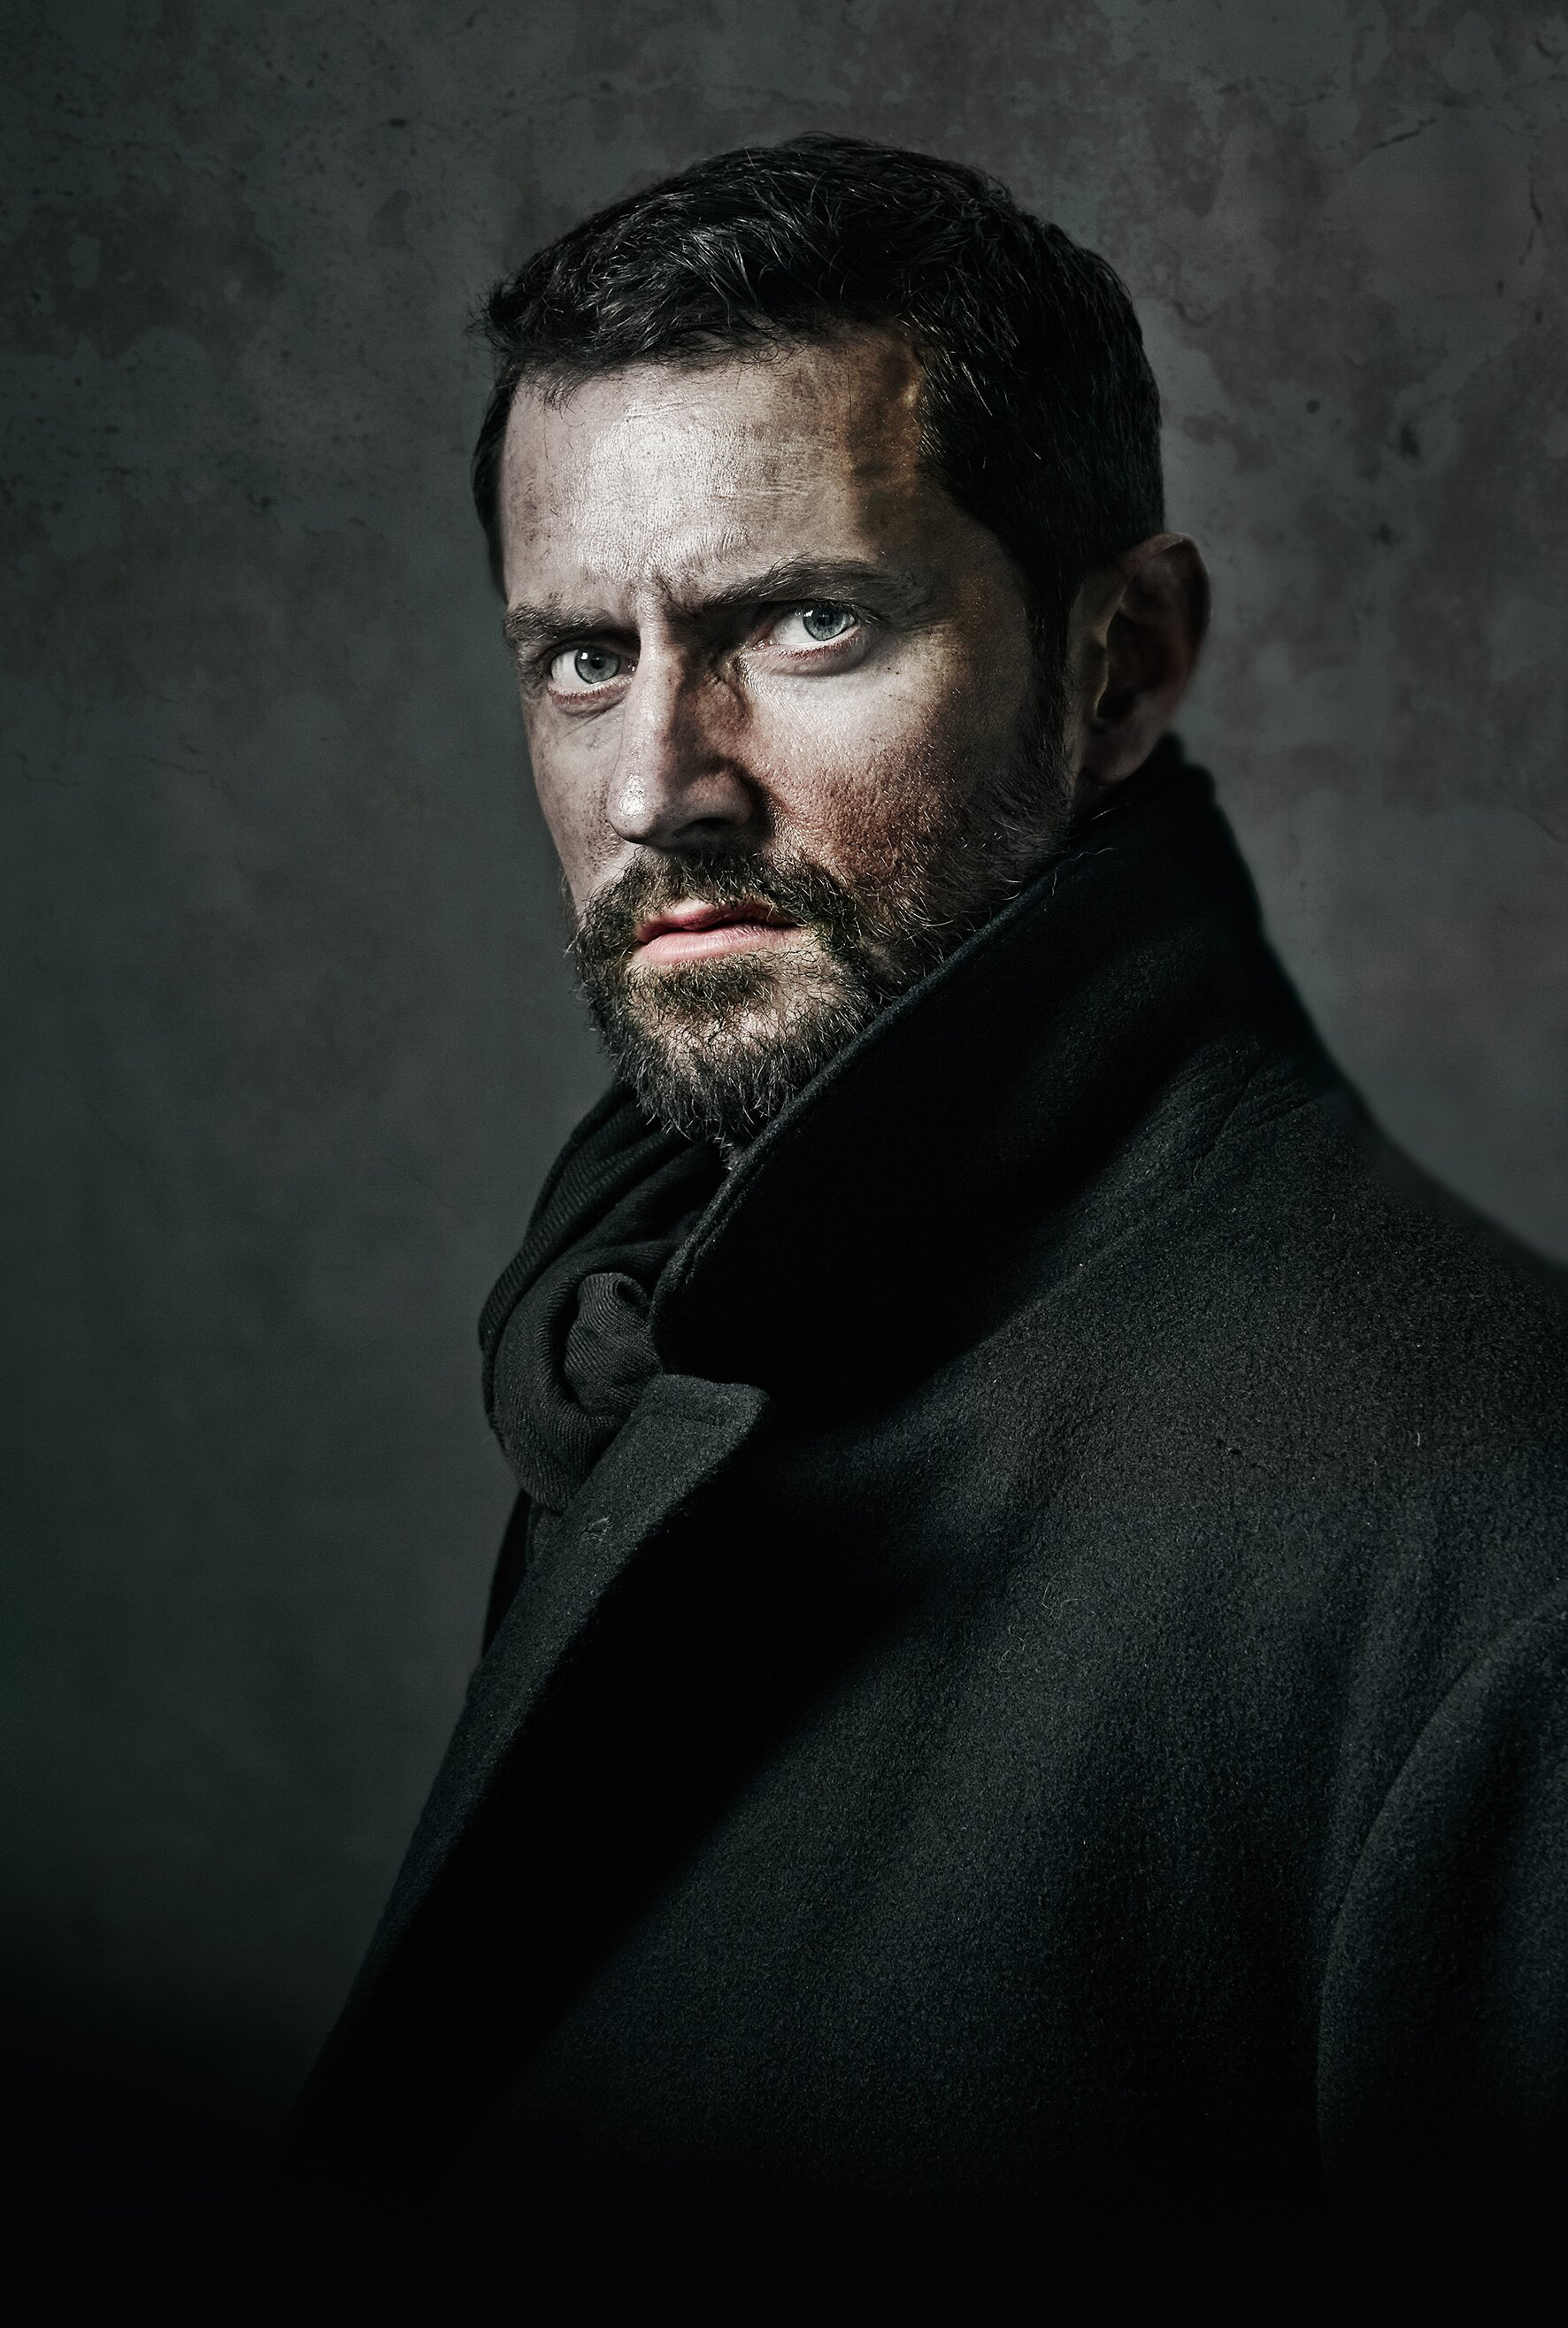 john proctor tragic hero The crucible tragic hero essay arthur miller wrote the crucible as a classic tragedy, including a tragic hero traditionally, from the crucible, john proctor is the character who best represents the definition of a tragic hero.